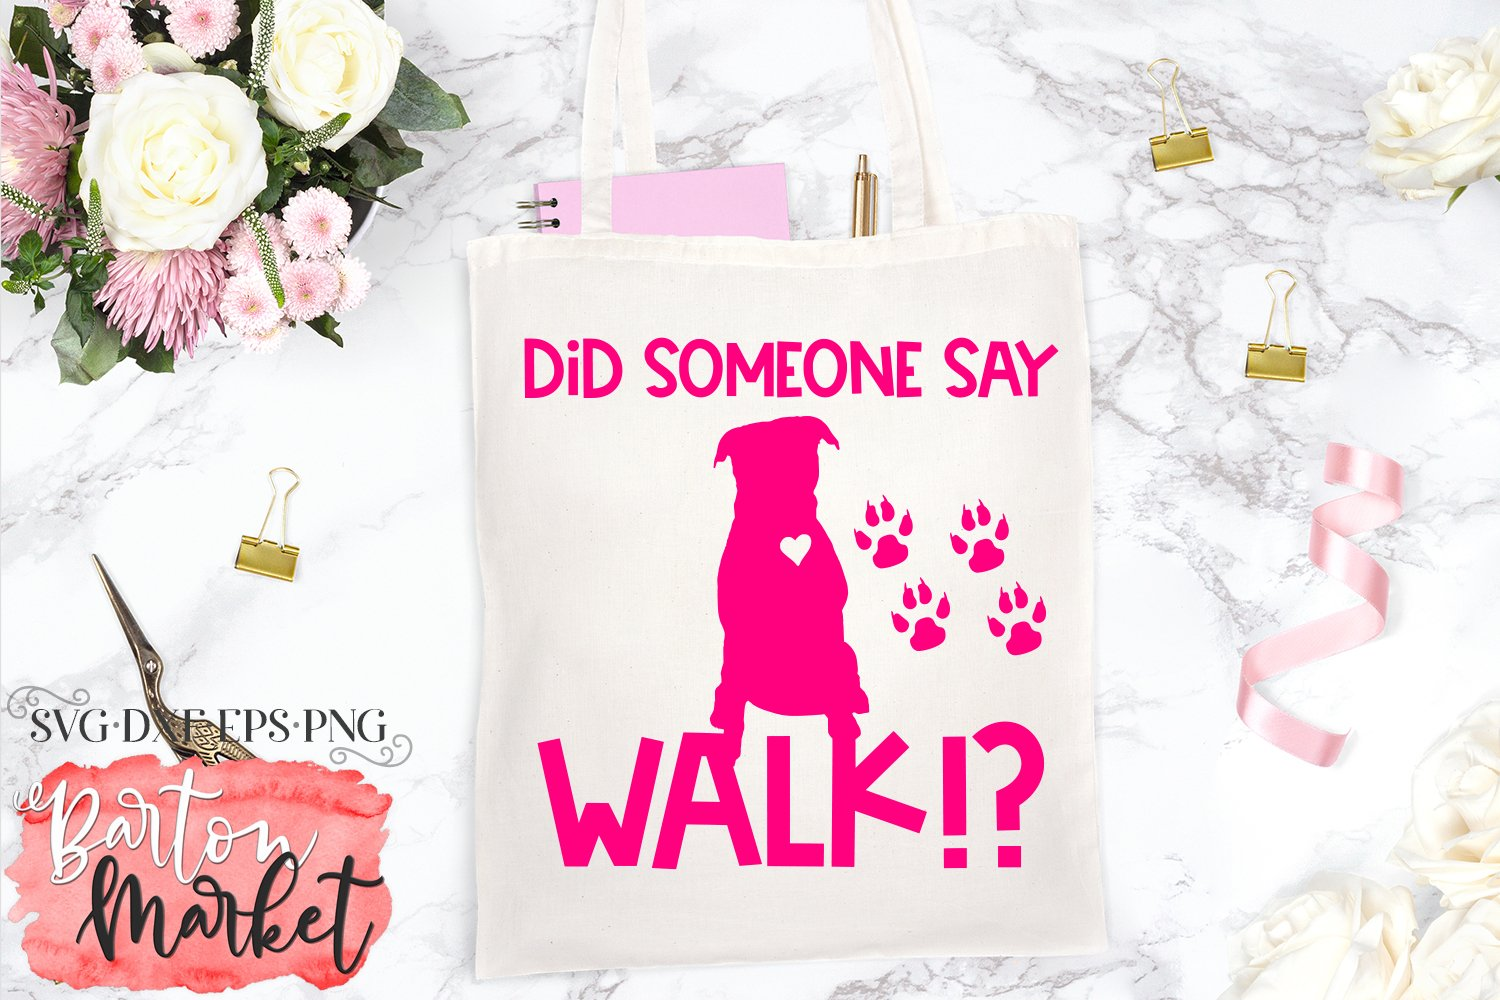 Did Someone Say Walk SVG DXF EPS PNG example image 3